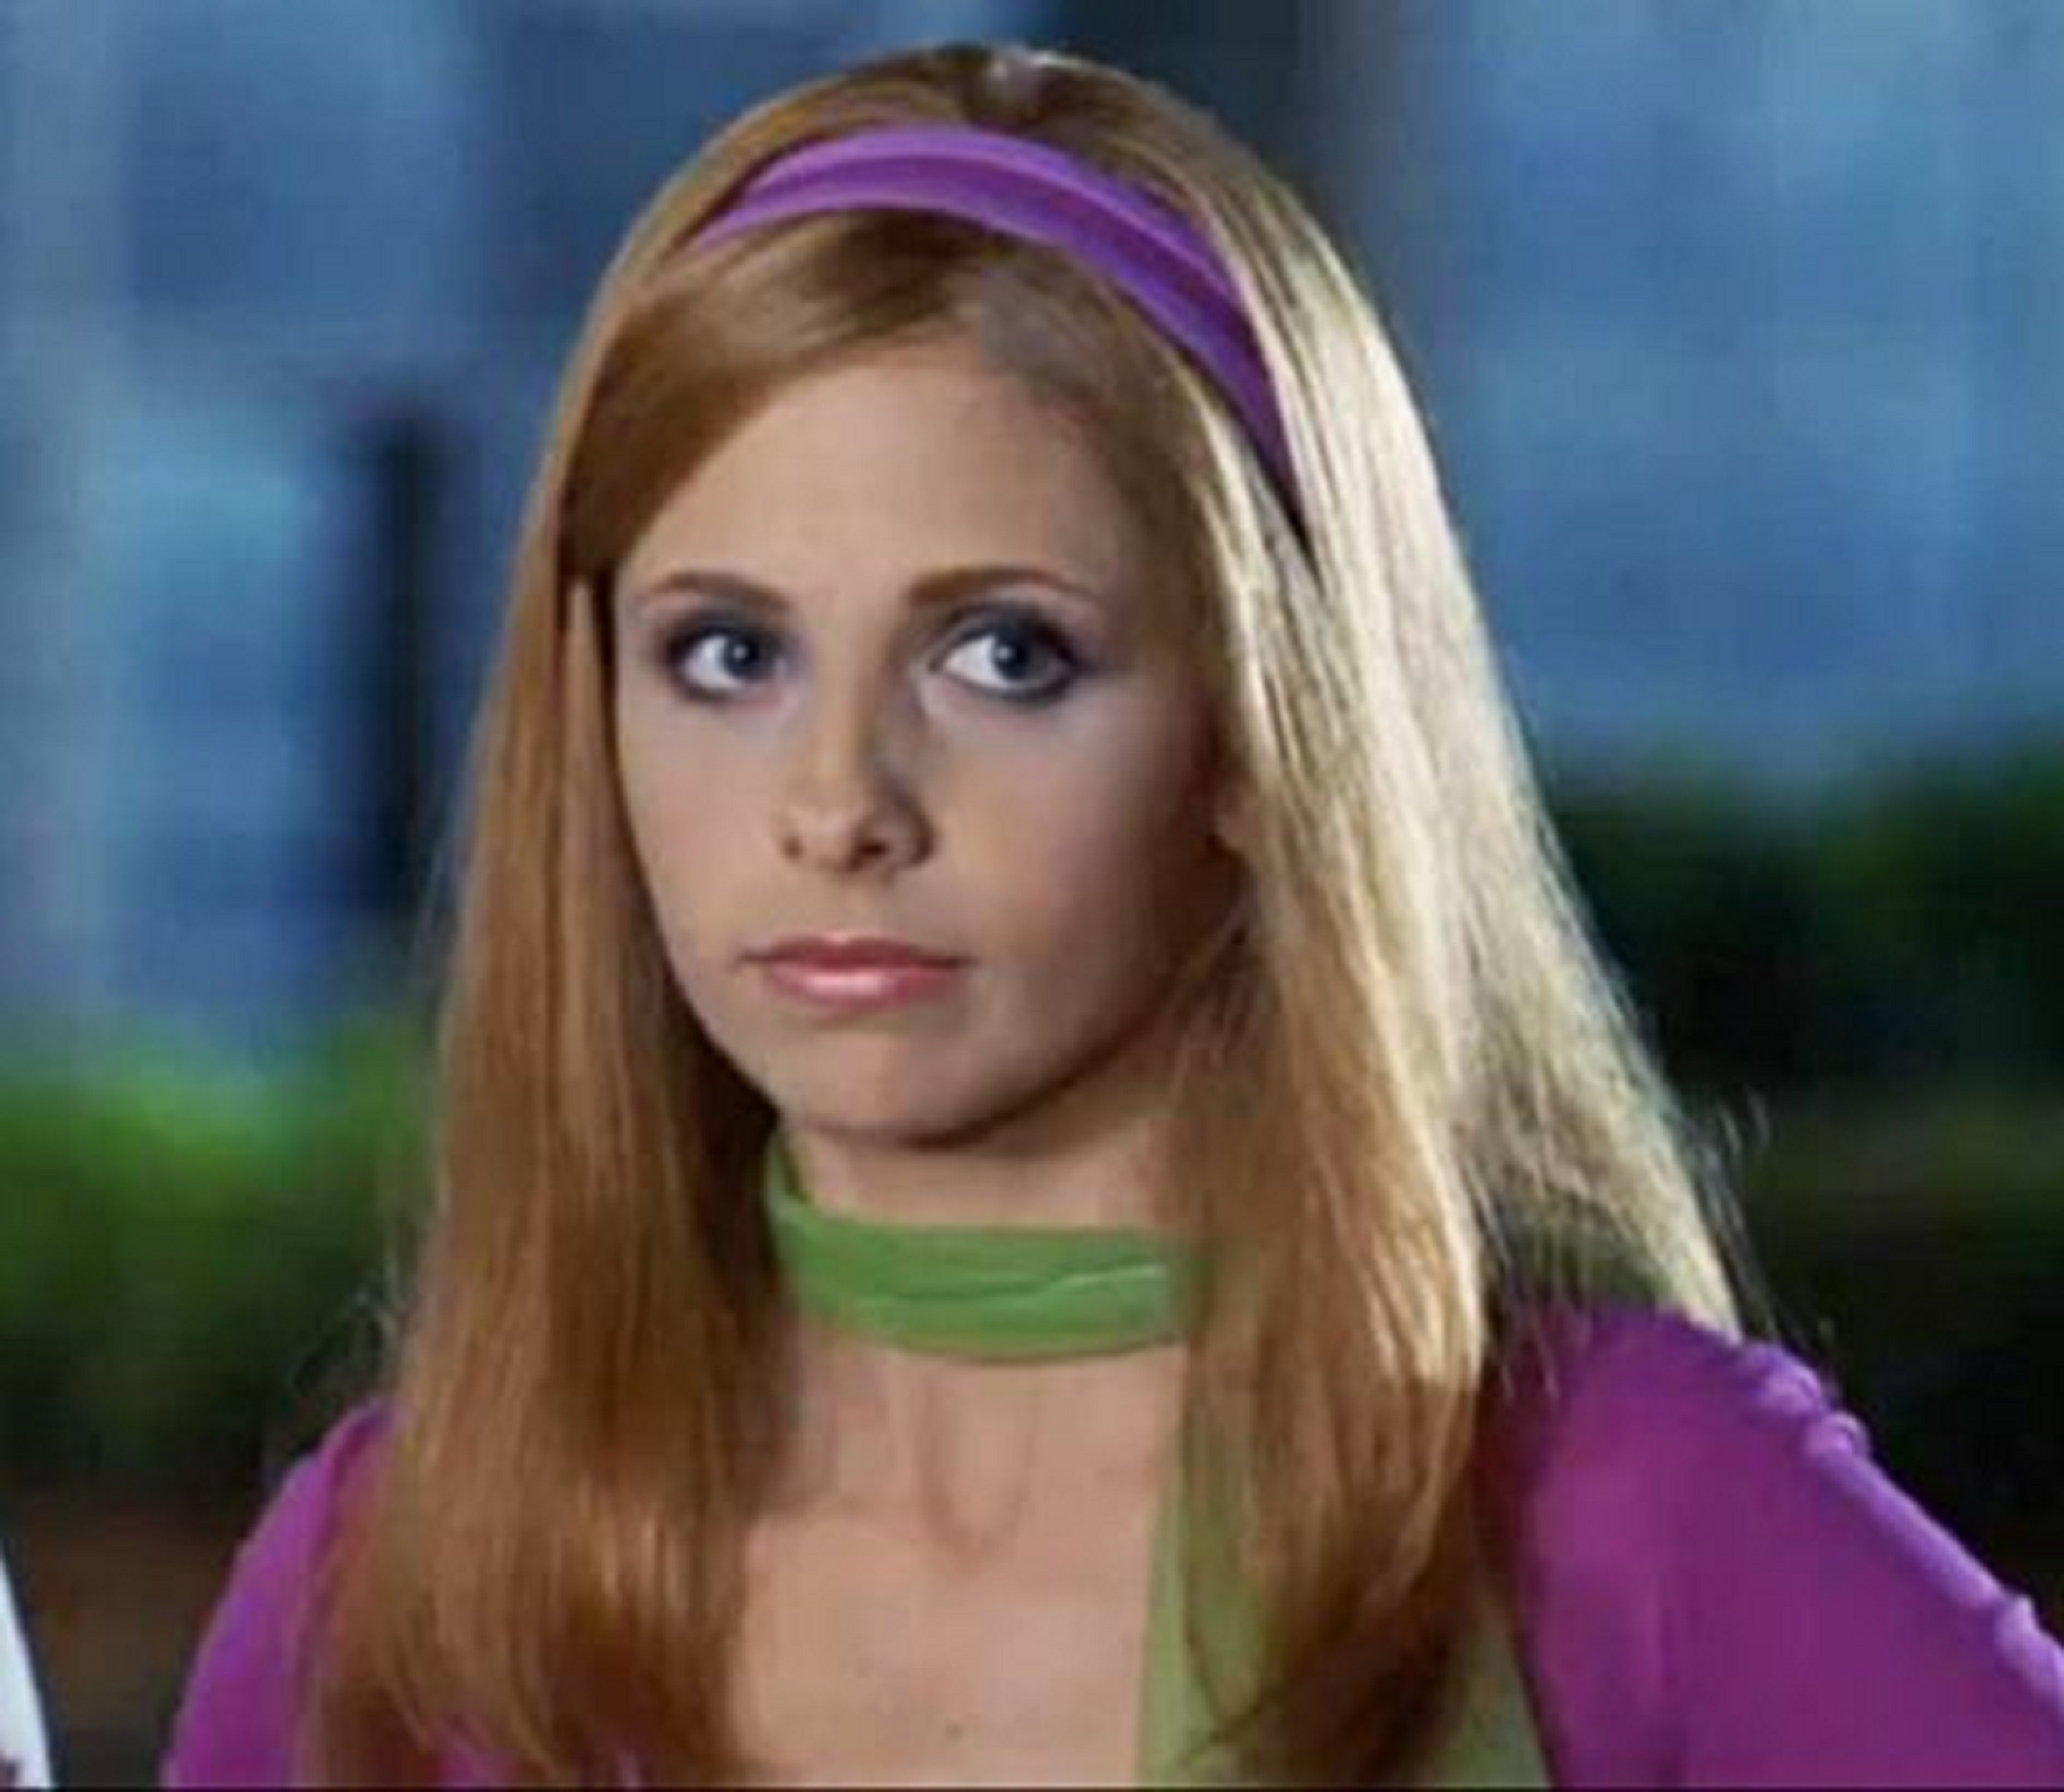 sarah michelle gellar as daphne by themindcontroller on